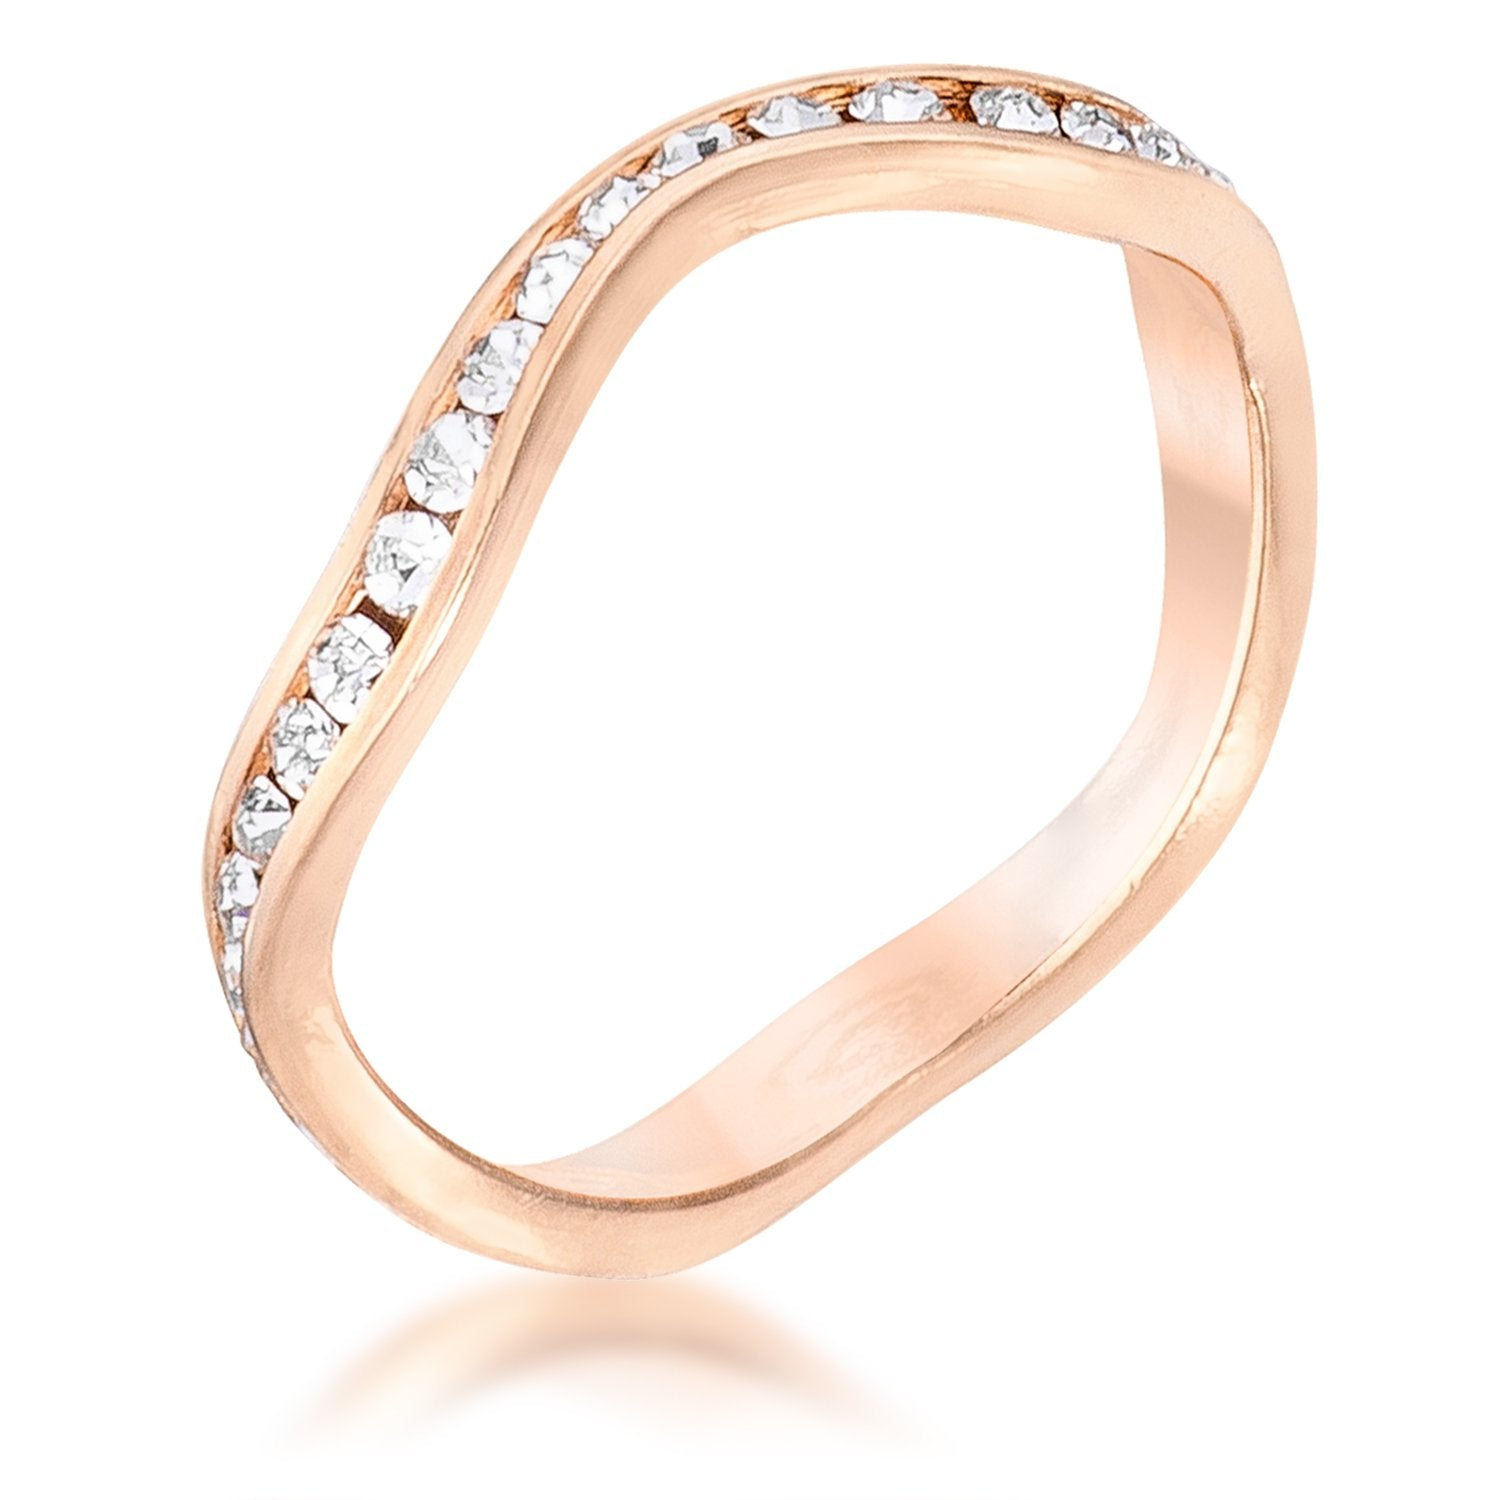 Rose Gold Plated Petite Wavy Channel Set Crystal Stackable Eternity Ring - Opulent Lifestyle